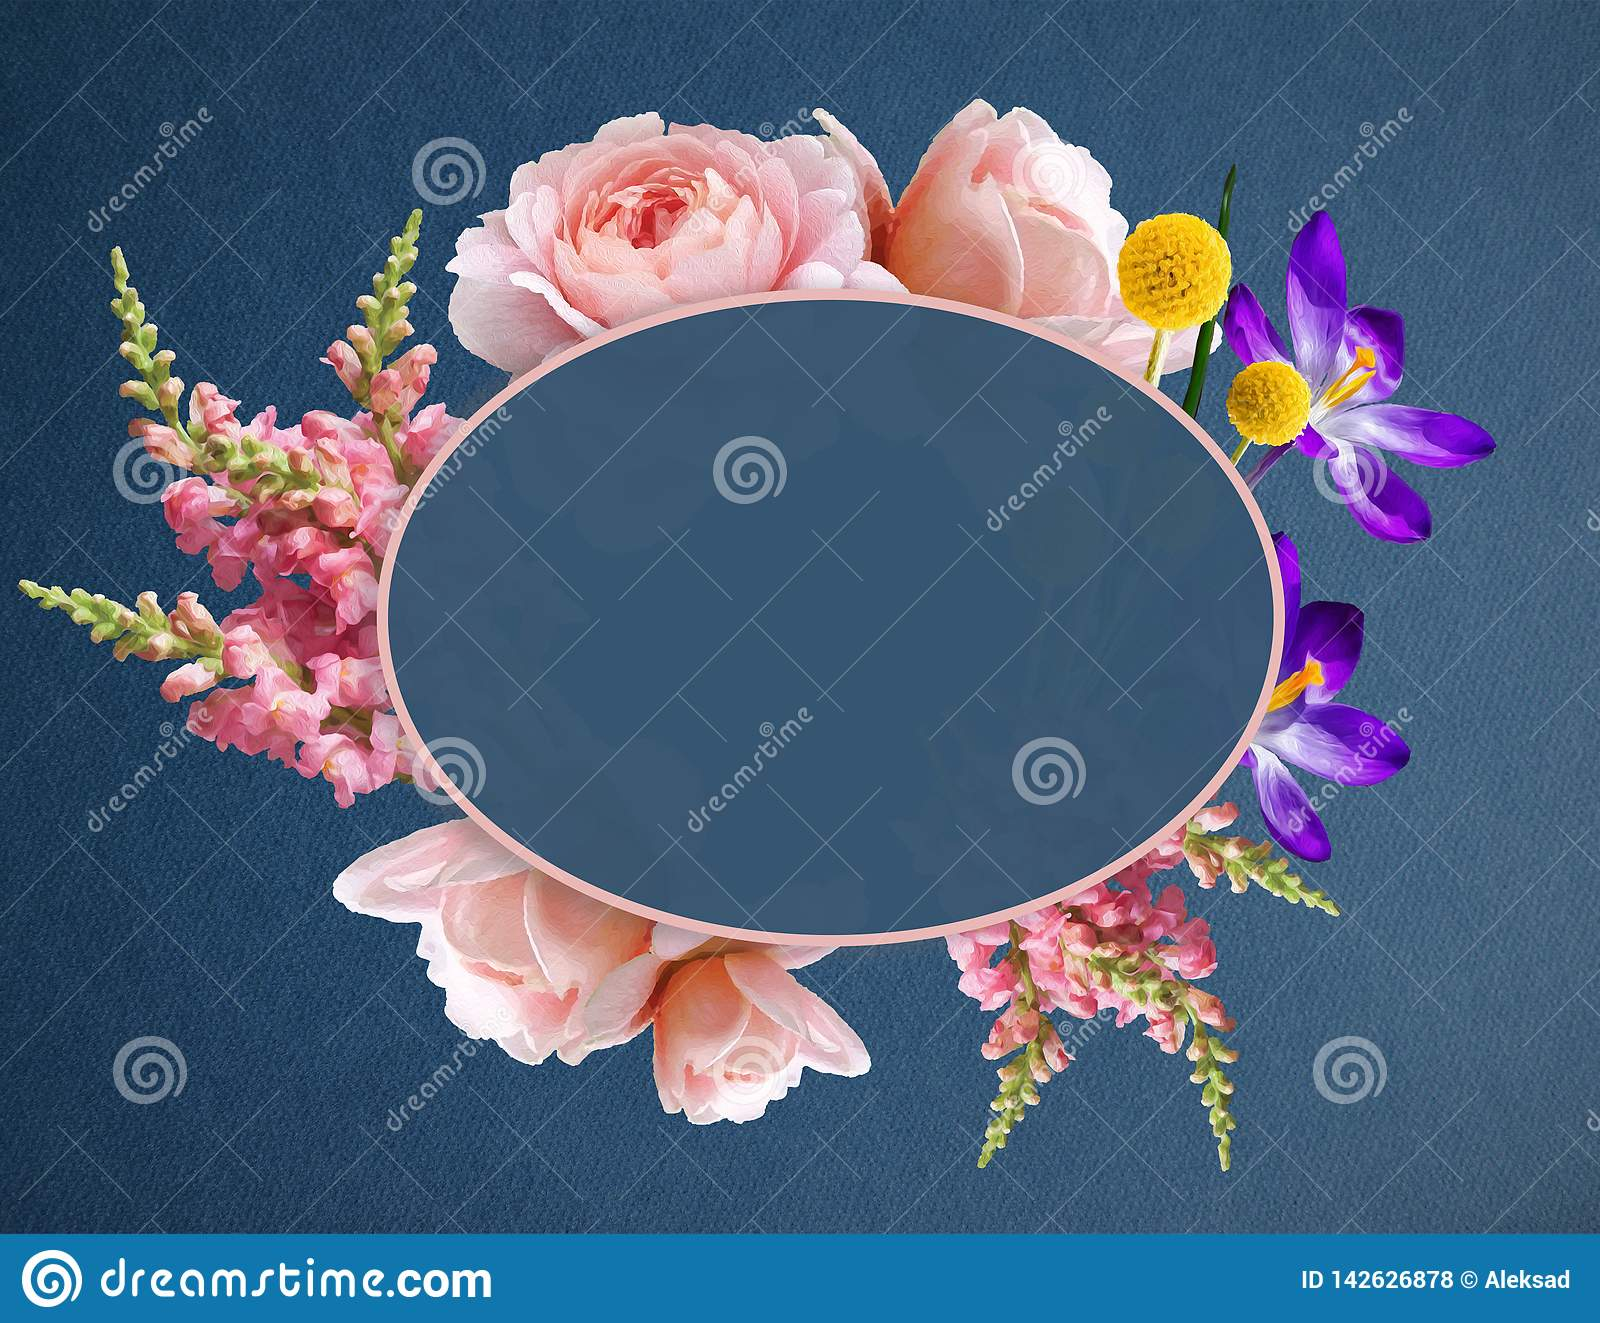 Illustration of a Beautiful Boho Flowers in Banner with Copy Space. Flower Wreath with roses, Crocus and other plants